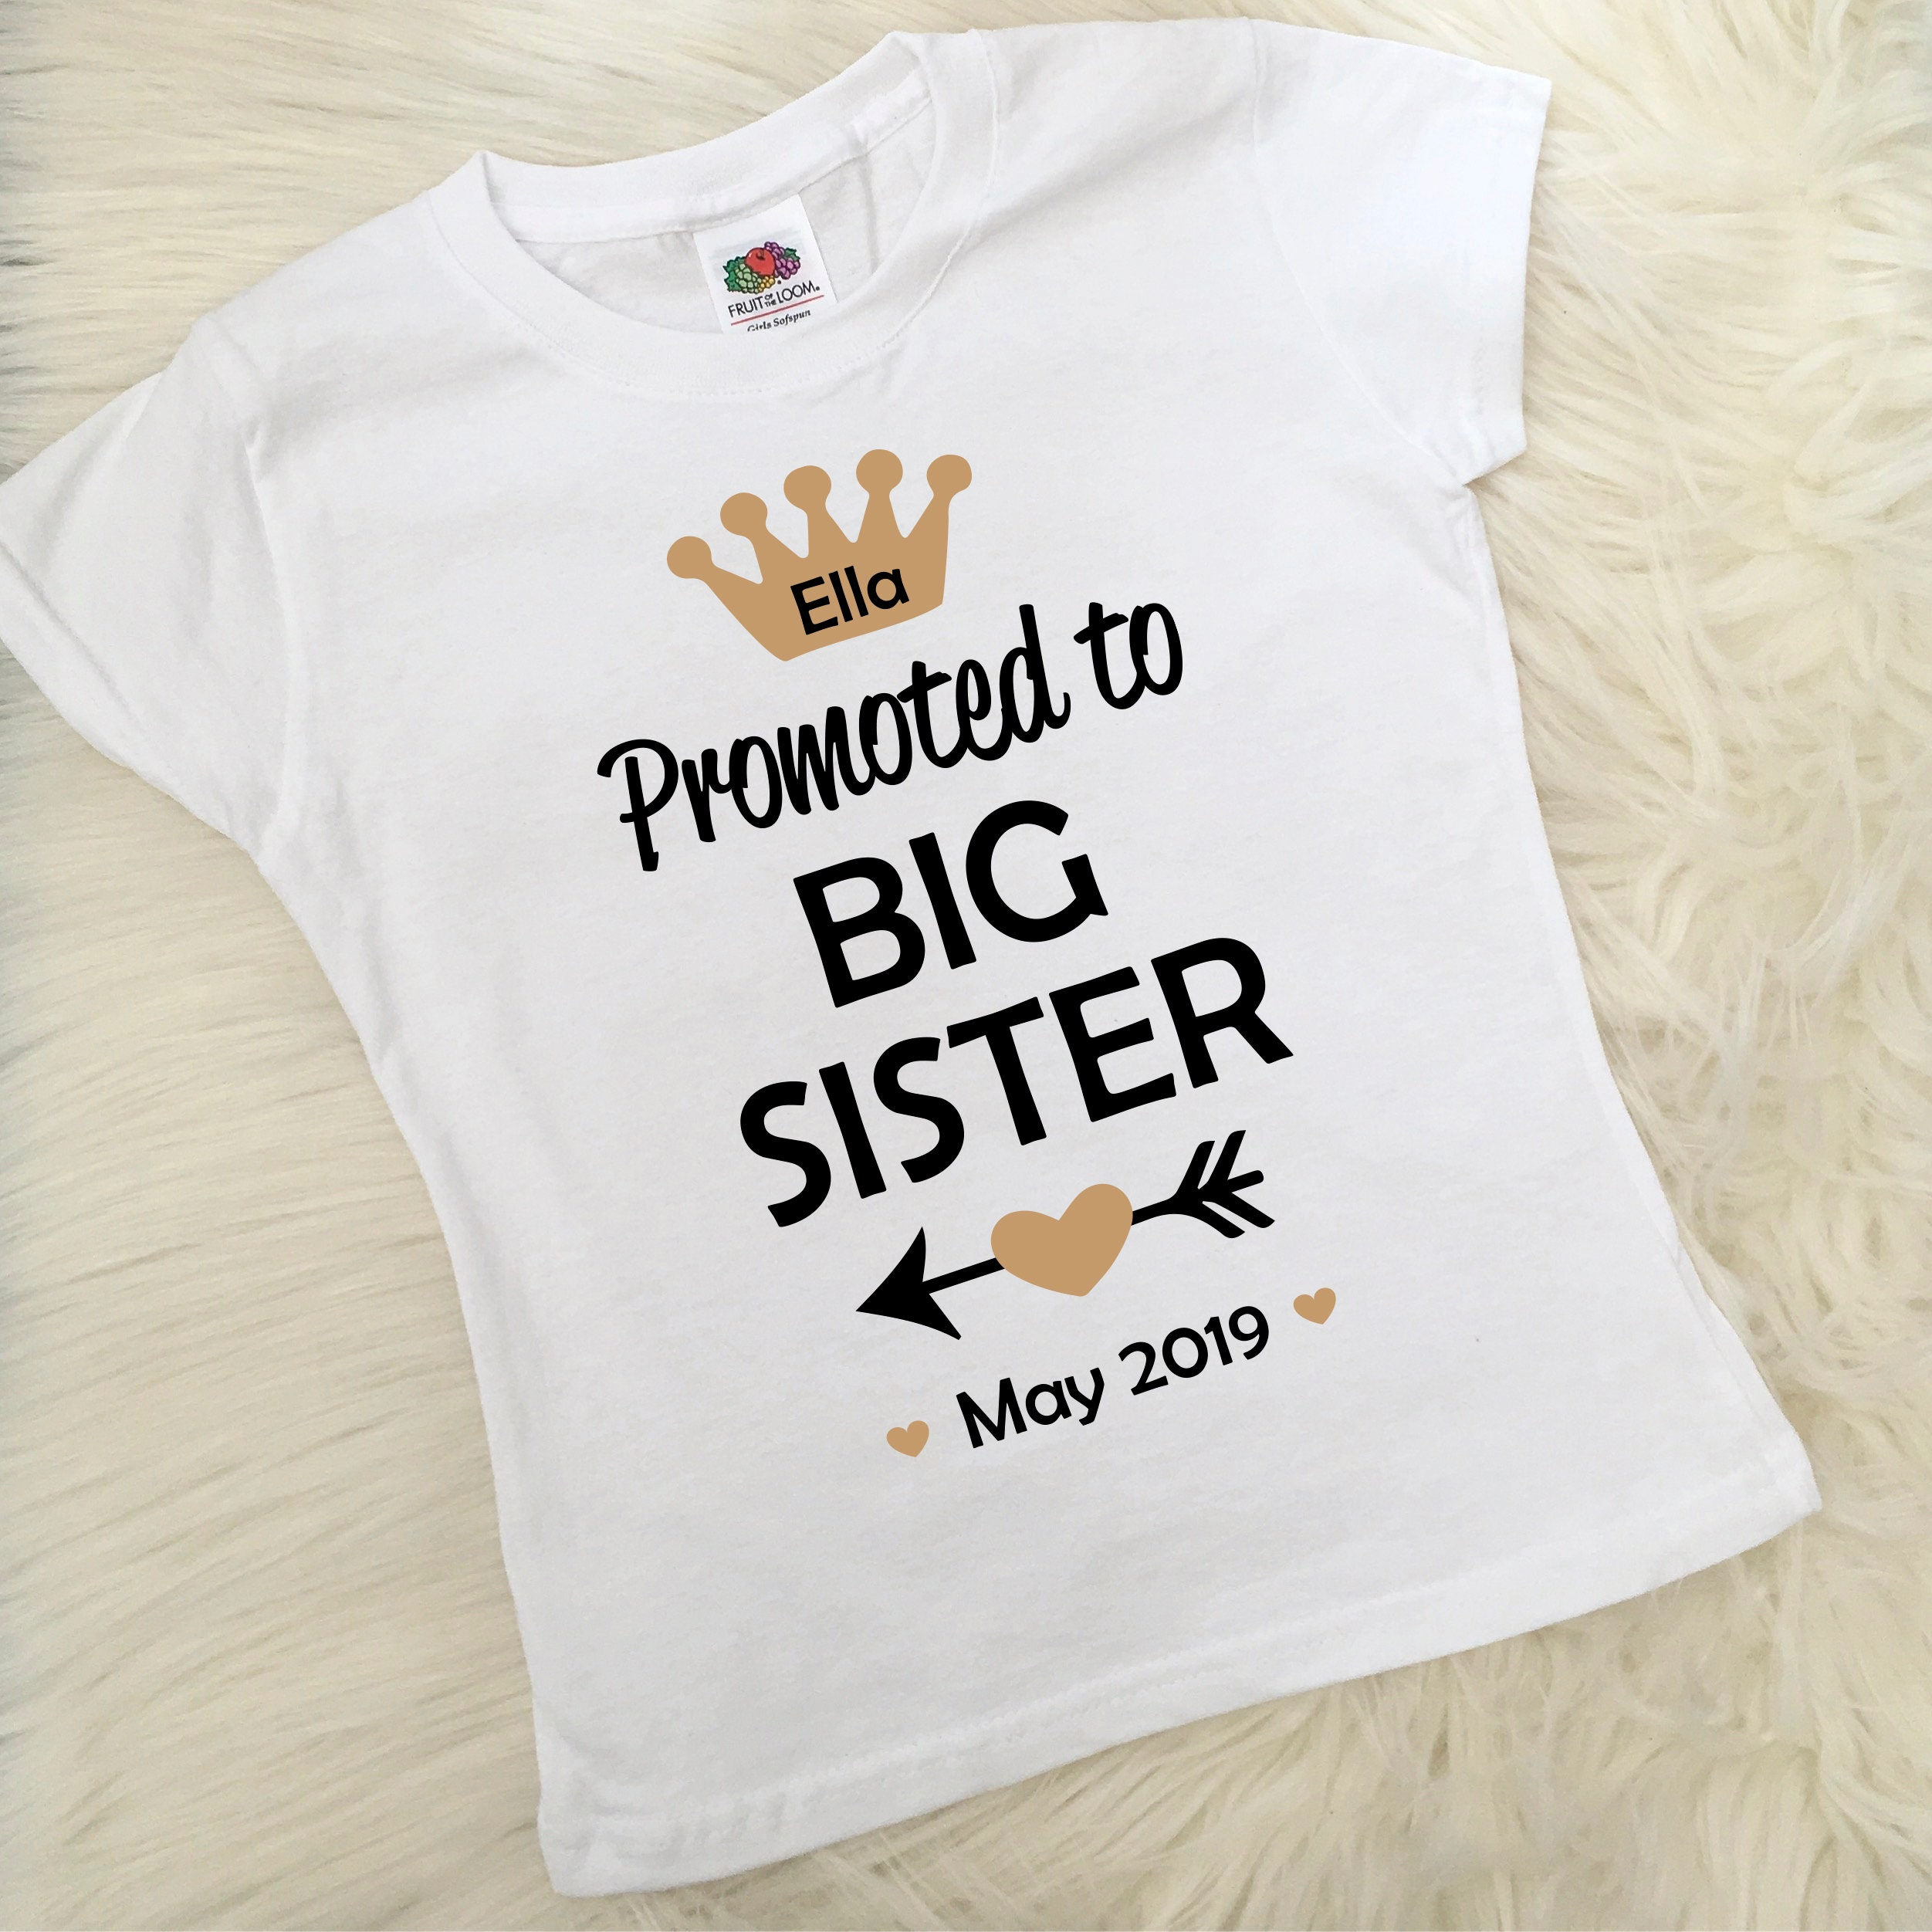 b60d713a Personalised Big Sister T Shirts Uk - DREAMWORKS